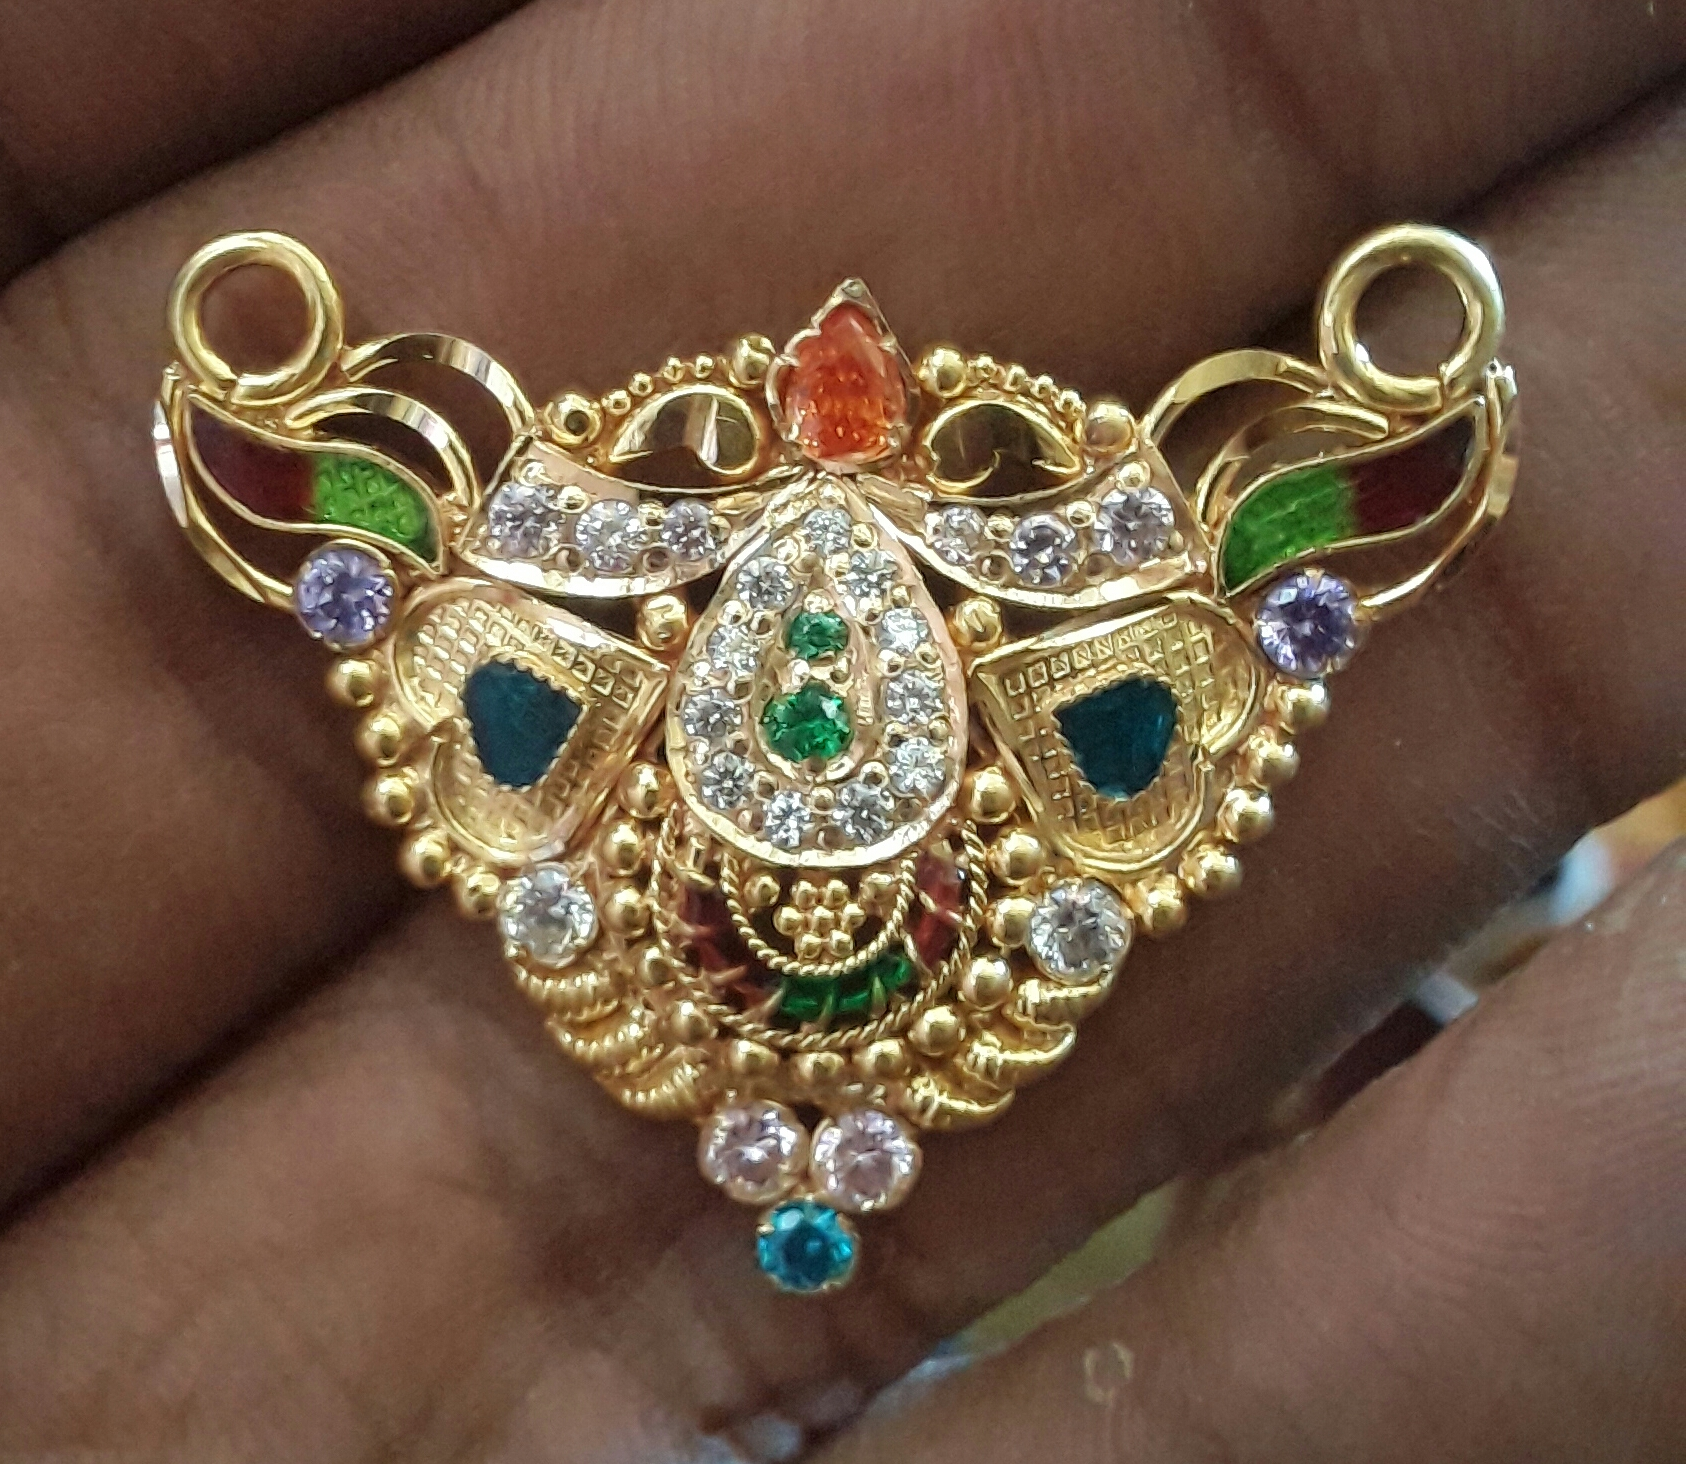 Marwadi Rajasthani fancy gold Mangalsutra And Weight is 6-7 gm